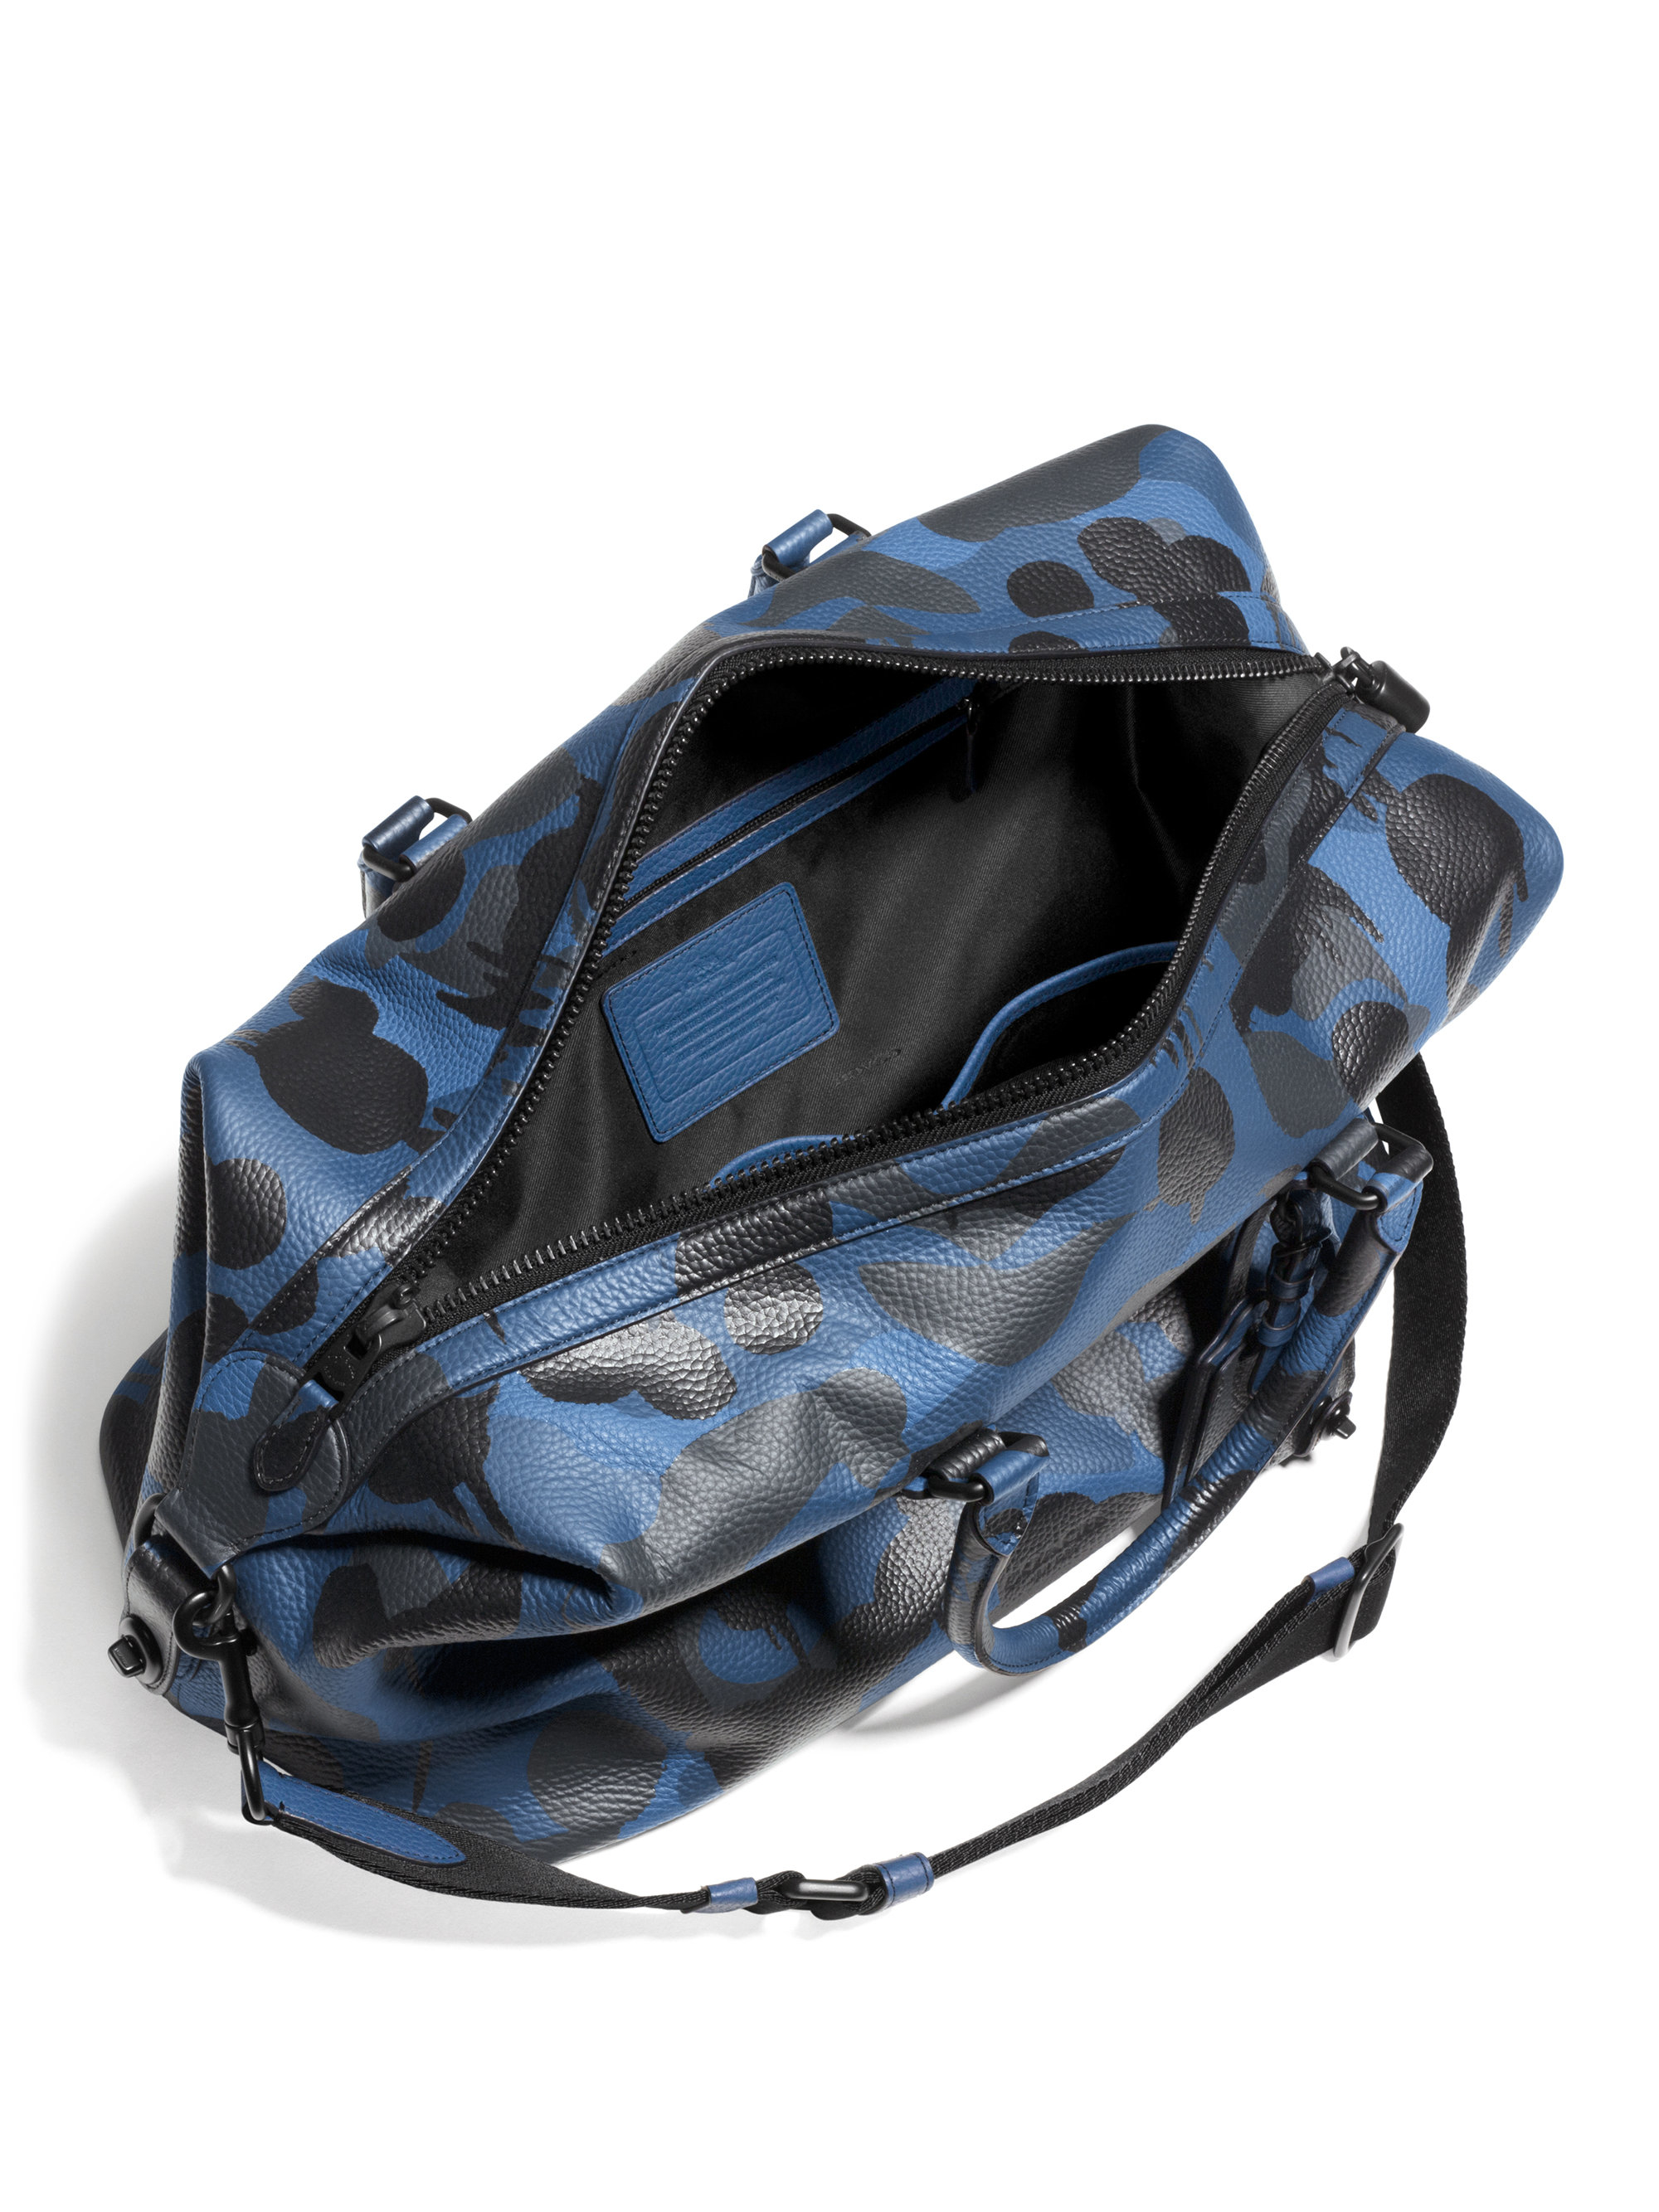 6f9e547988 ... where can i buy lyst coach explorer camo print leather duffle bag in  blue 536b1 1120d norway coach vintage brown leather mens ...